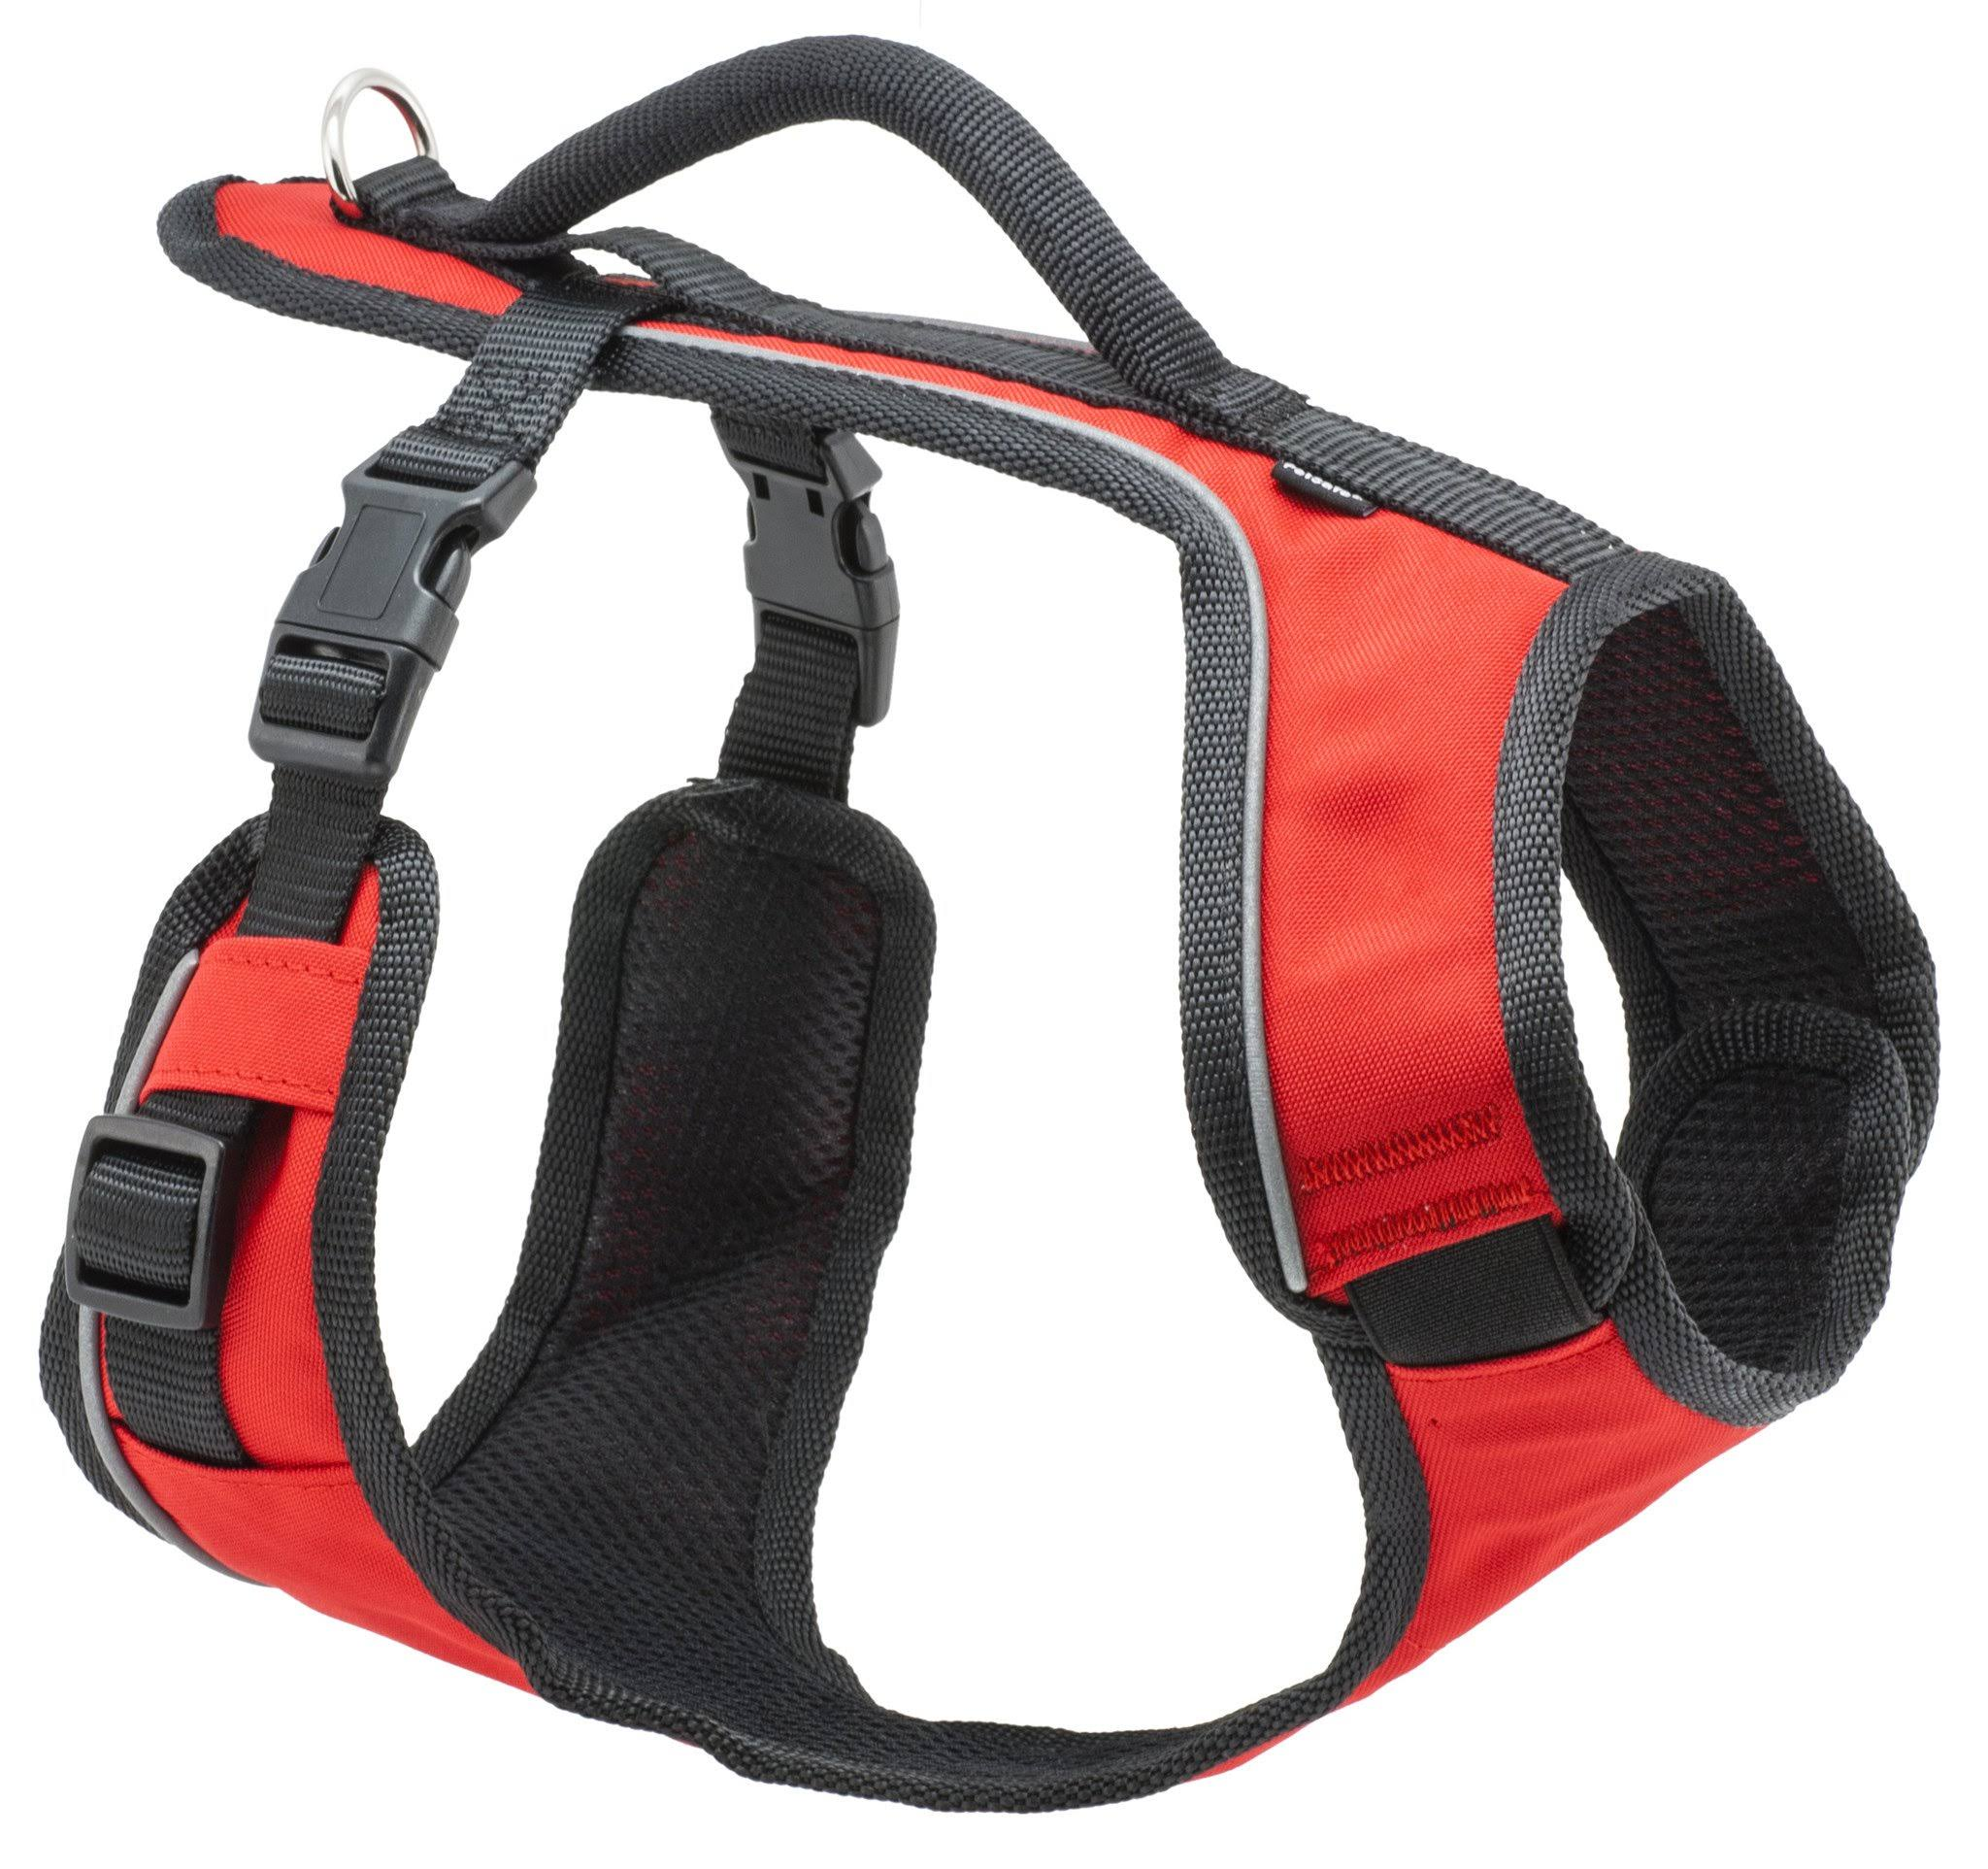 PetSafe EasySport Dog Harness - Red, Medium, 22-30 in